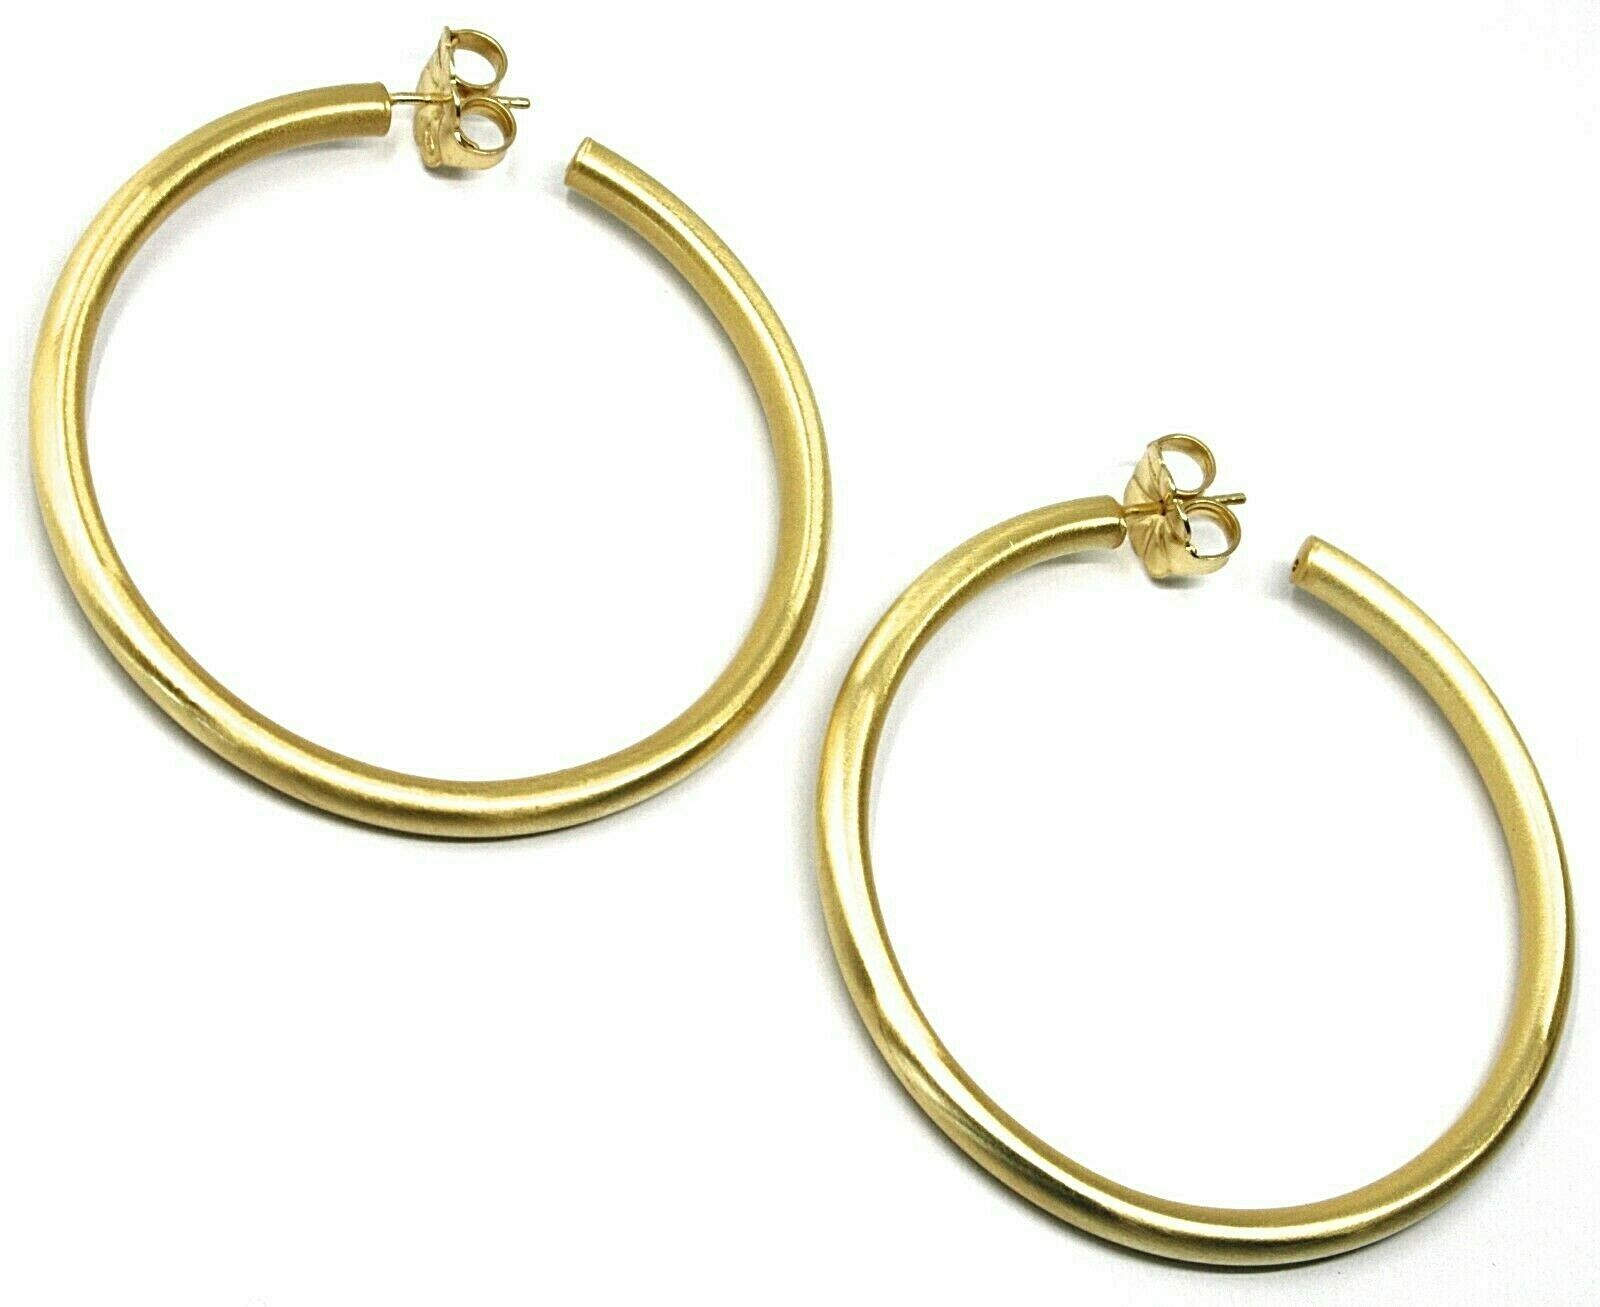 925 STERLING SILVER CIRCLE HOOPS BIG EARRINGS, 6 cm x 4 mm, YELLOW, SATIN FINISH